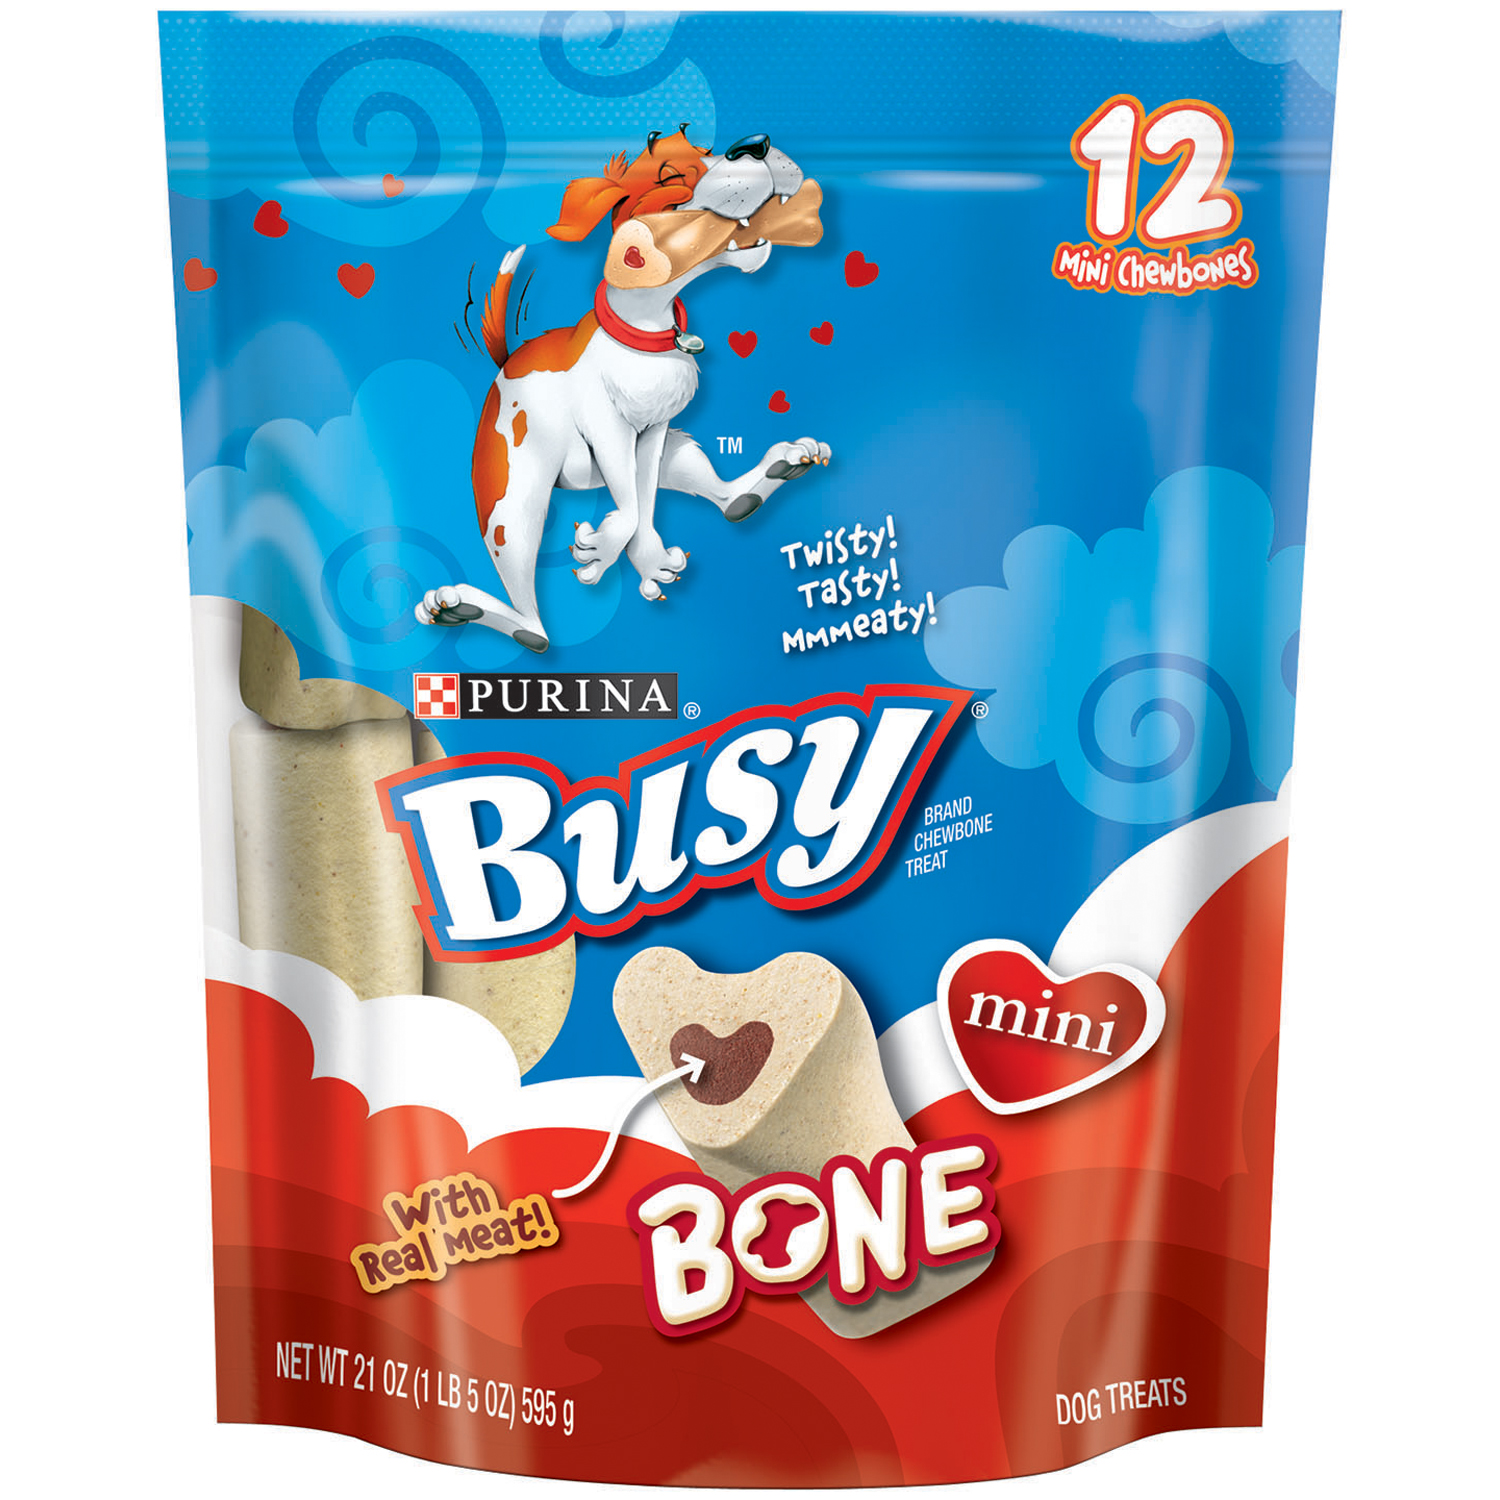 Purina Busy Bone Mini Dog Treats 12 ct Pouch